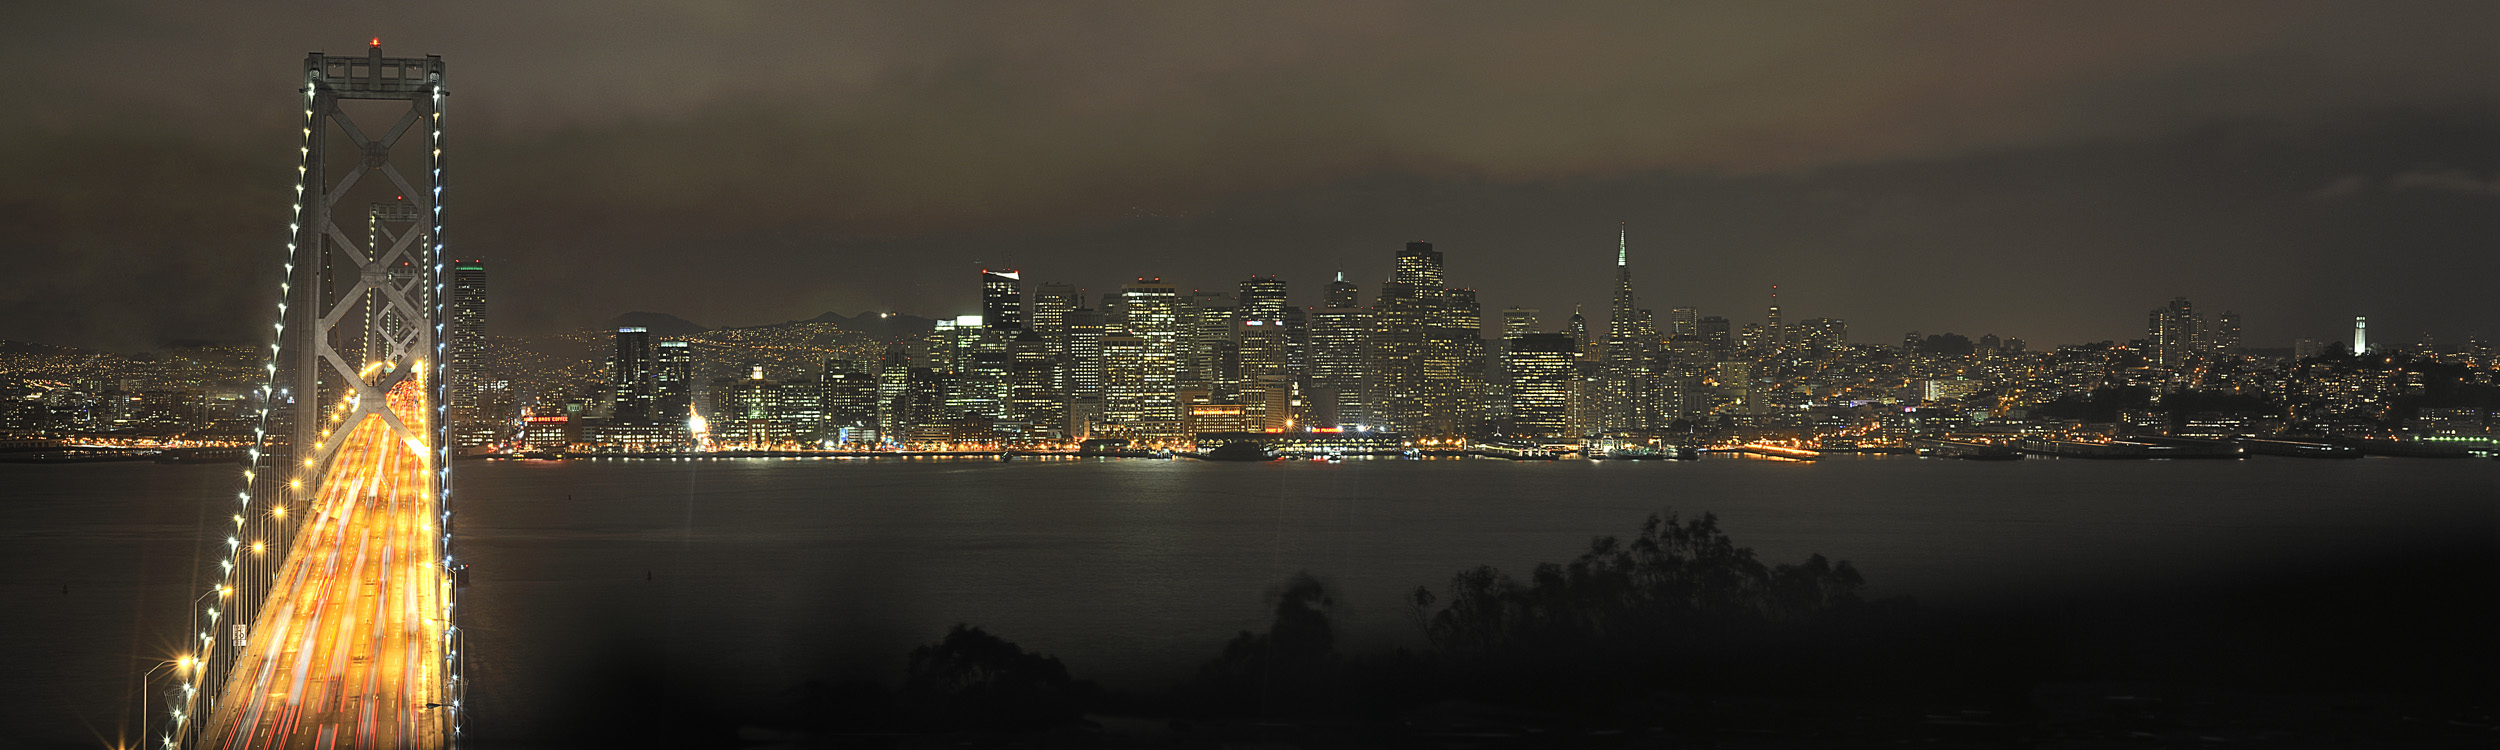 San Francisco Stormy Night